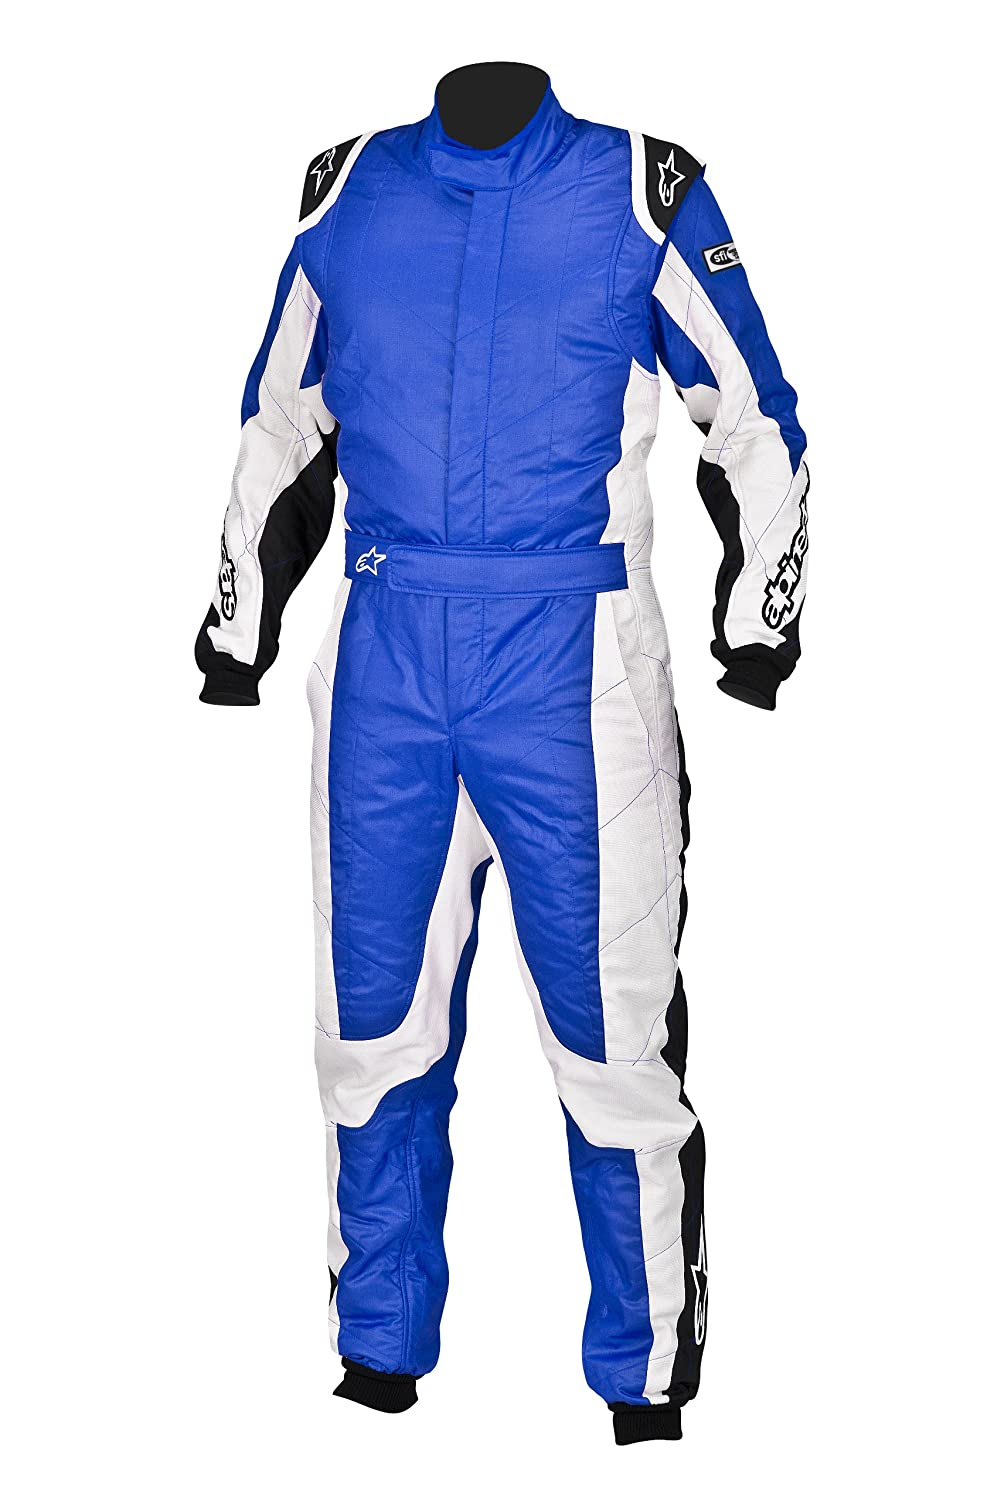 Alpinestars 3354113-72-48 Blue//White Size-48 GP Tech Suit